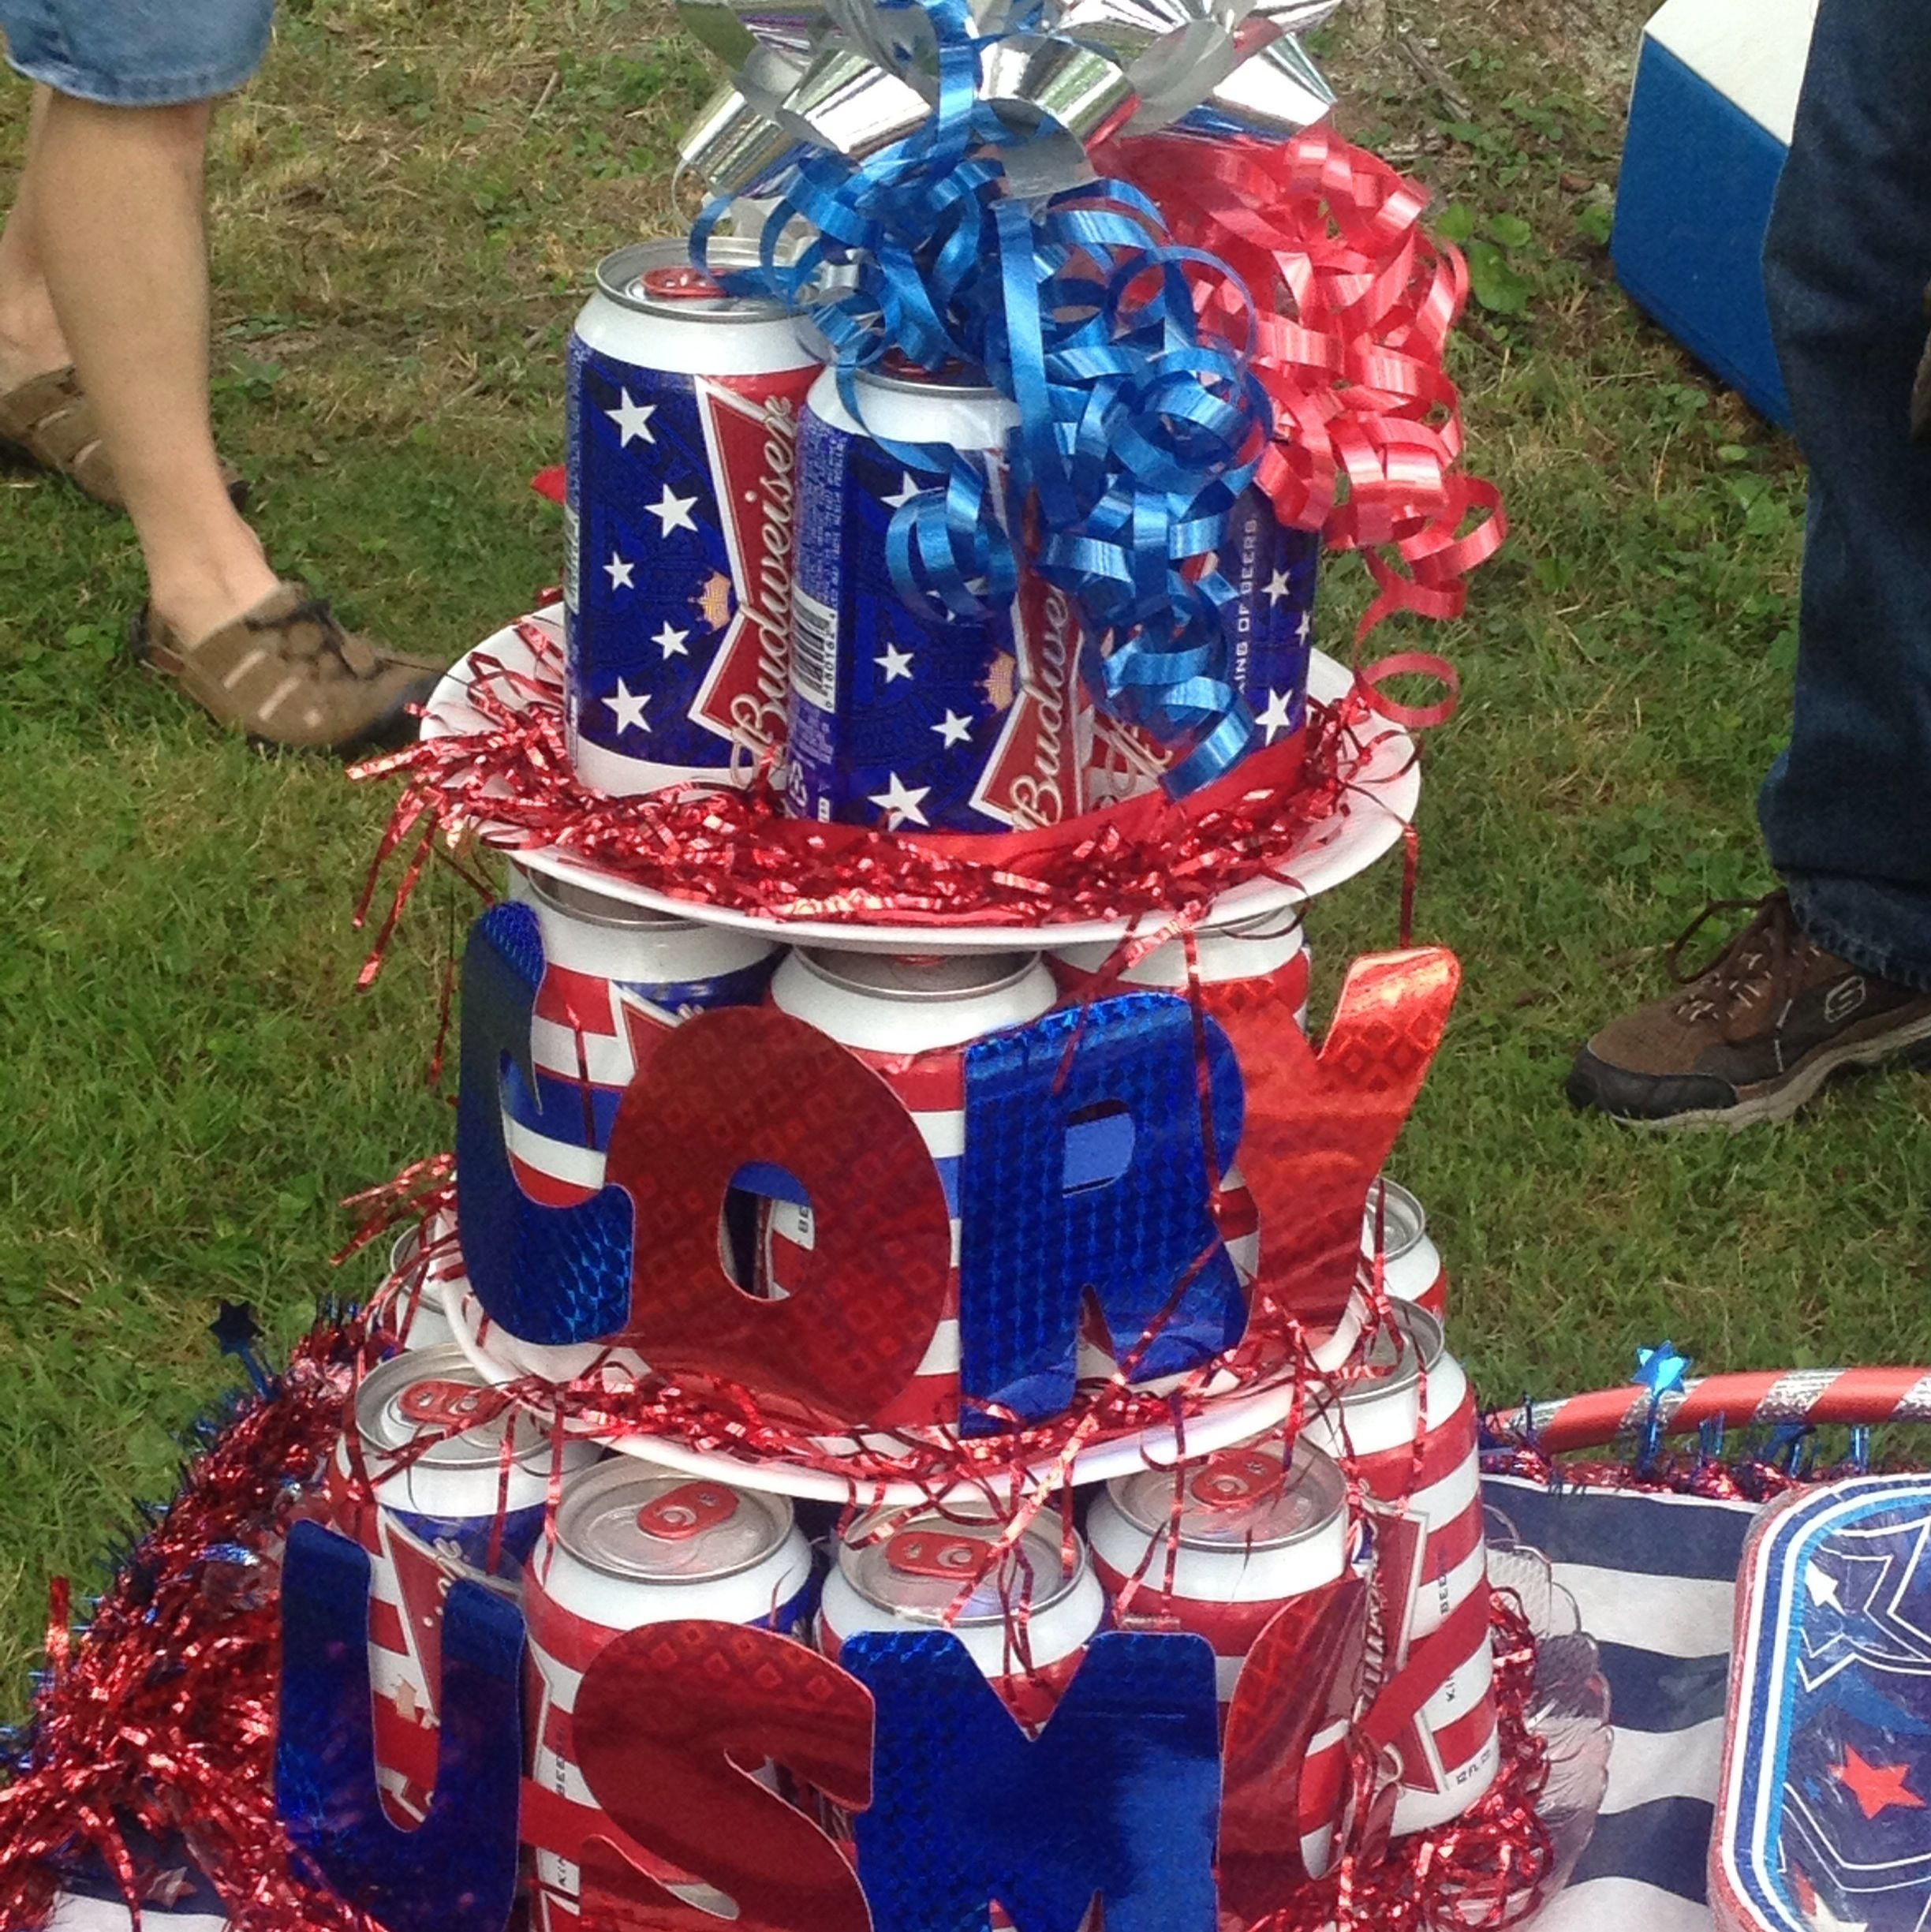 Cory 39 s beer cake for his welcome home party army for Military welcome home party decorations